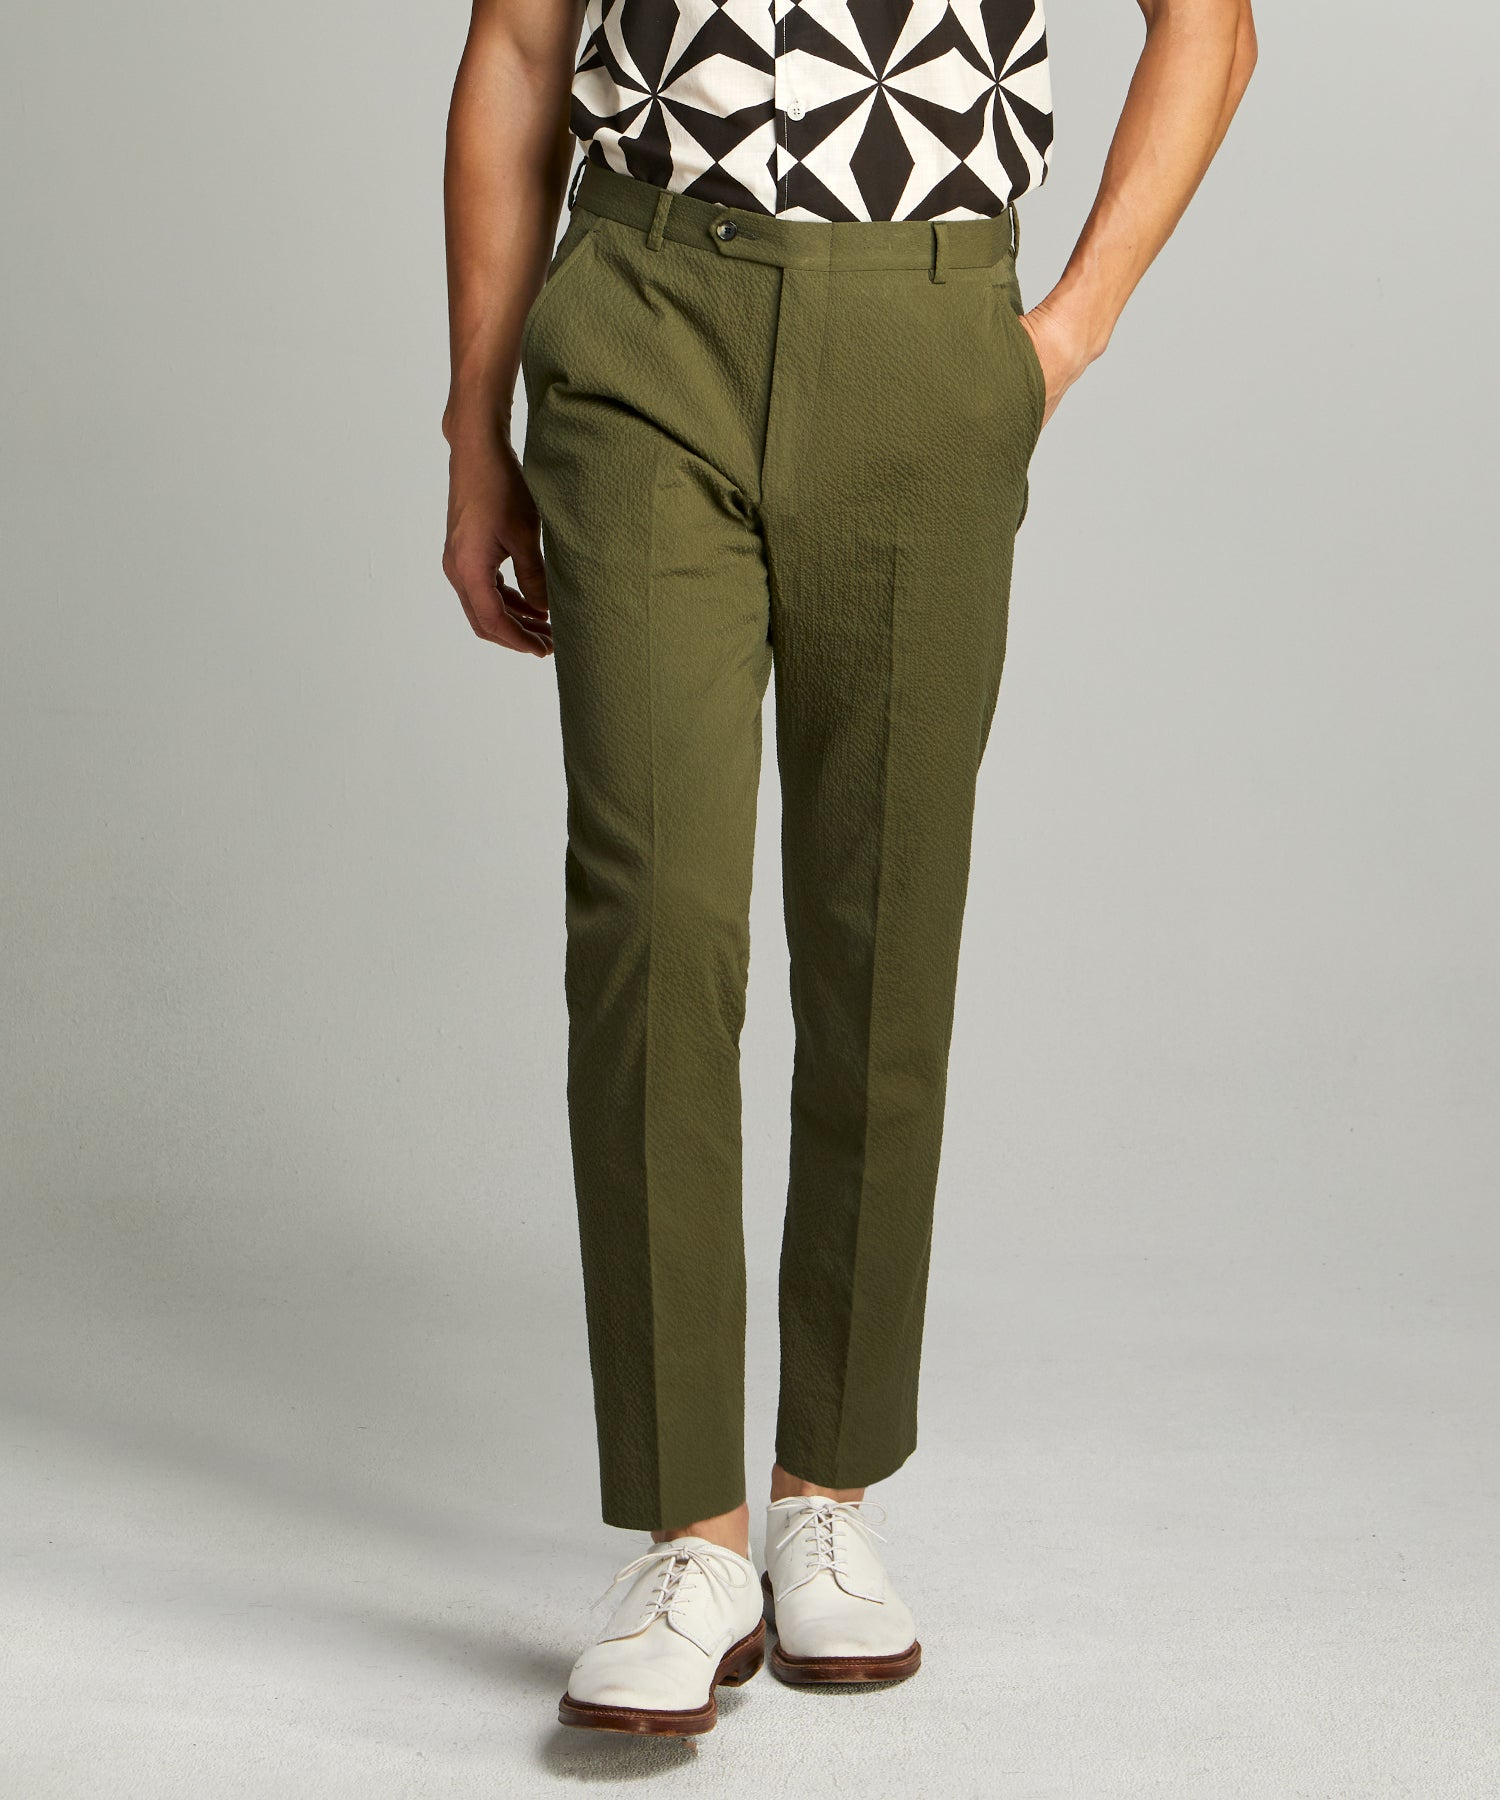 Sutton Seersucker Suit Trouser in Olive